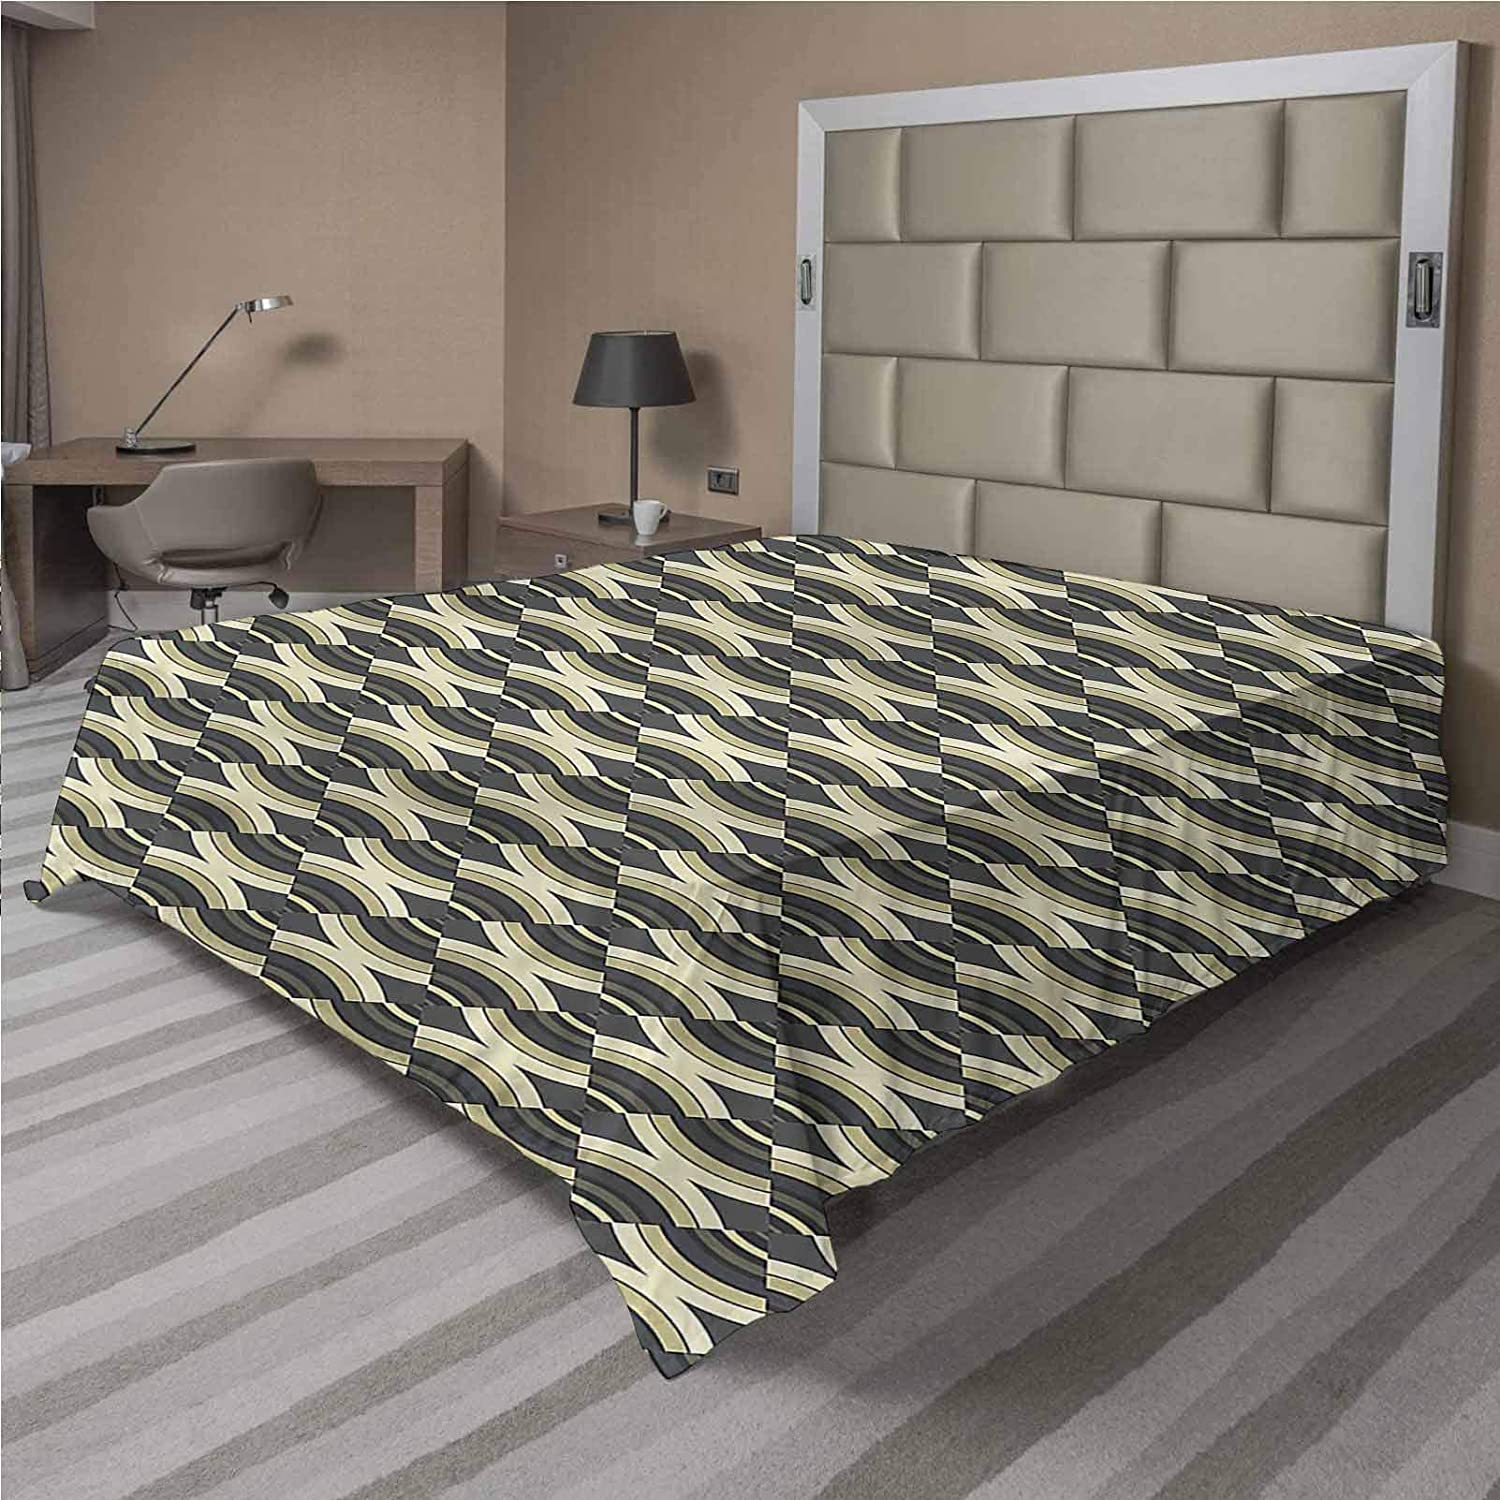 LCGGDB Brand new Geometric 40% OFF Cheap Sale Flat Sheet Only Pale B Brushed Lines Microfiber